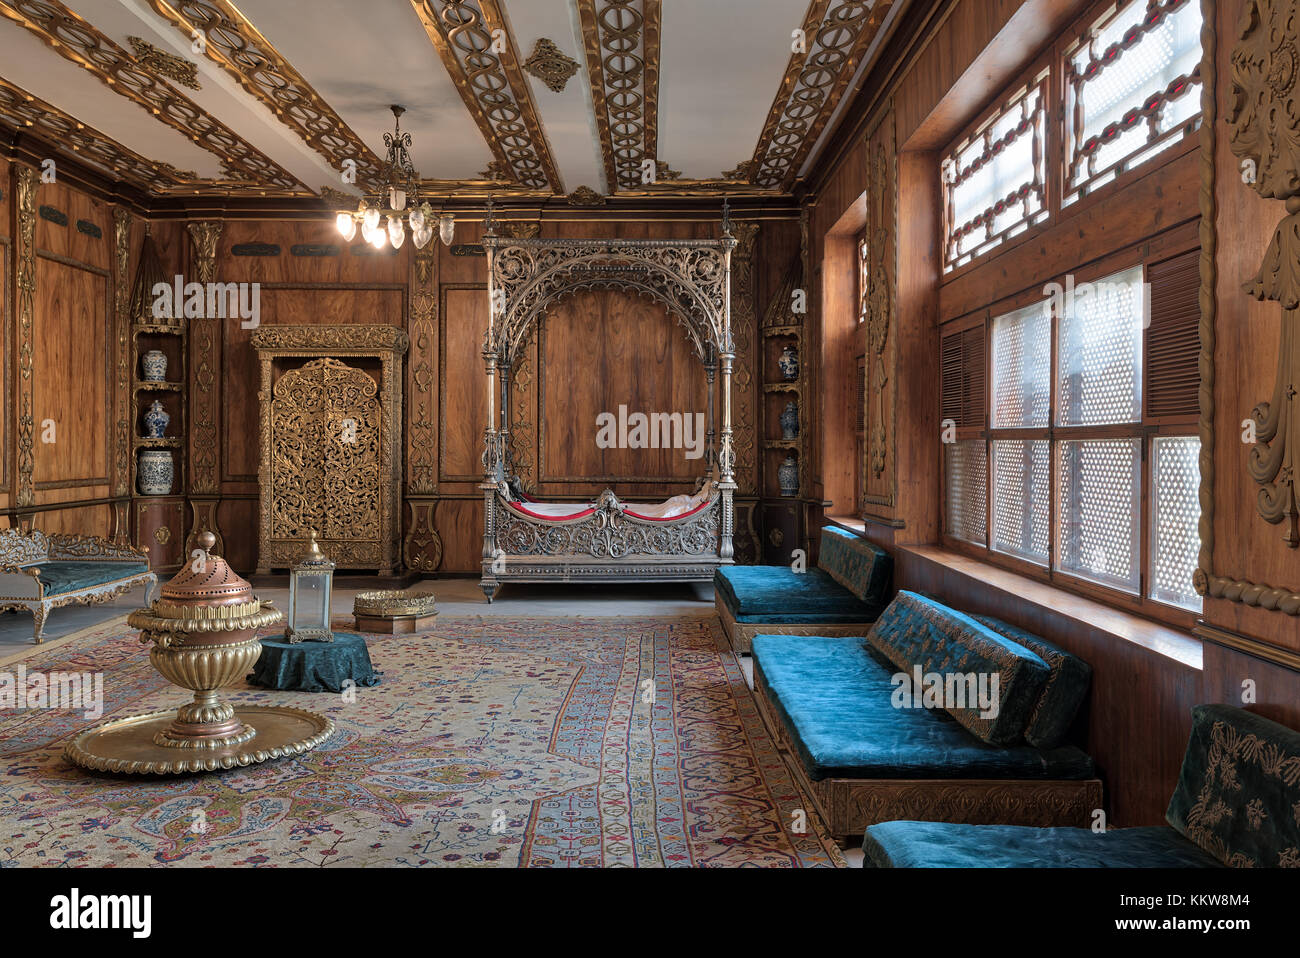 Cairo, Egypt - December 2, 2017: Manial Palace of Prince Mohammed Ali Tawfik. Residence of prince's mother with - Stock Image